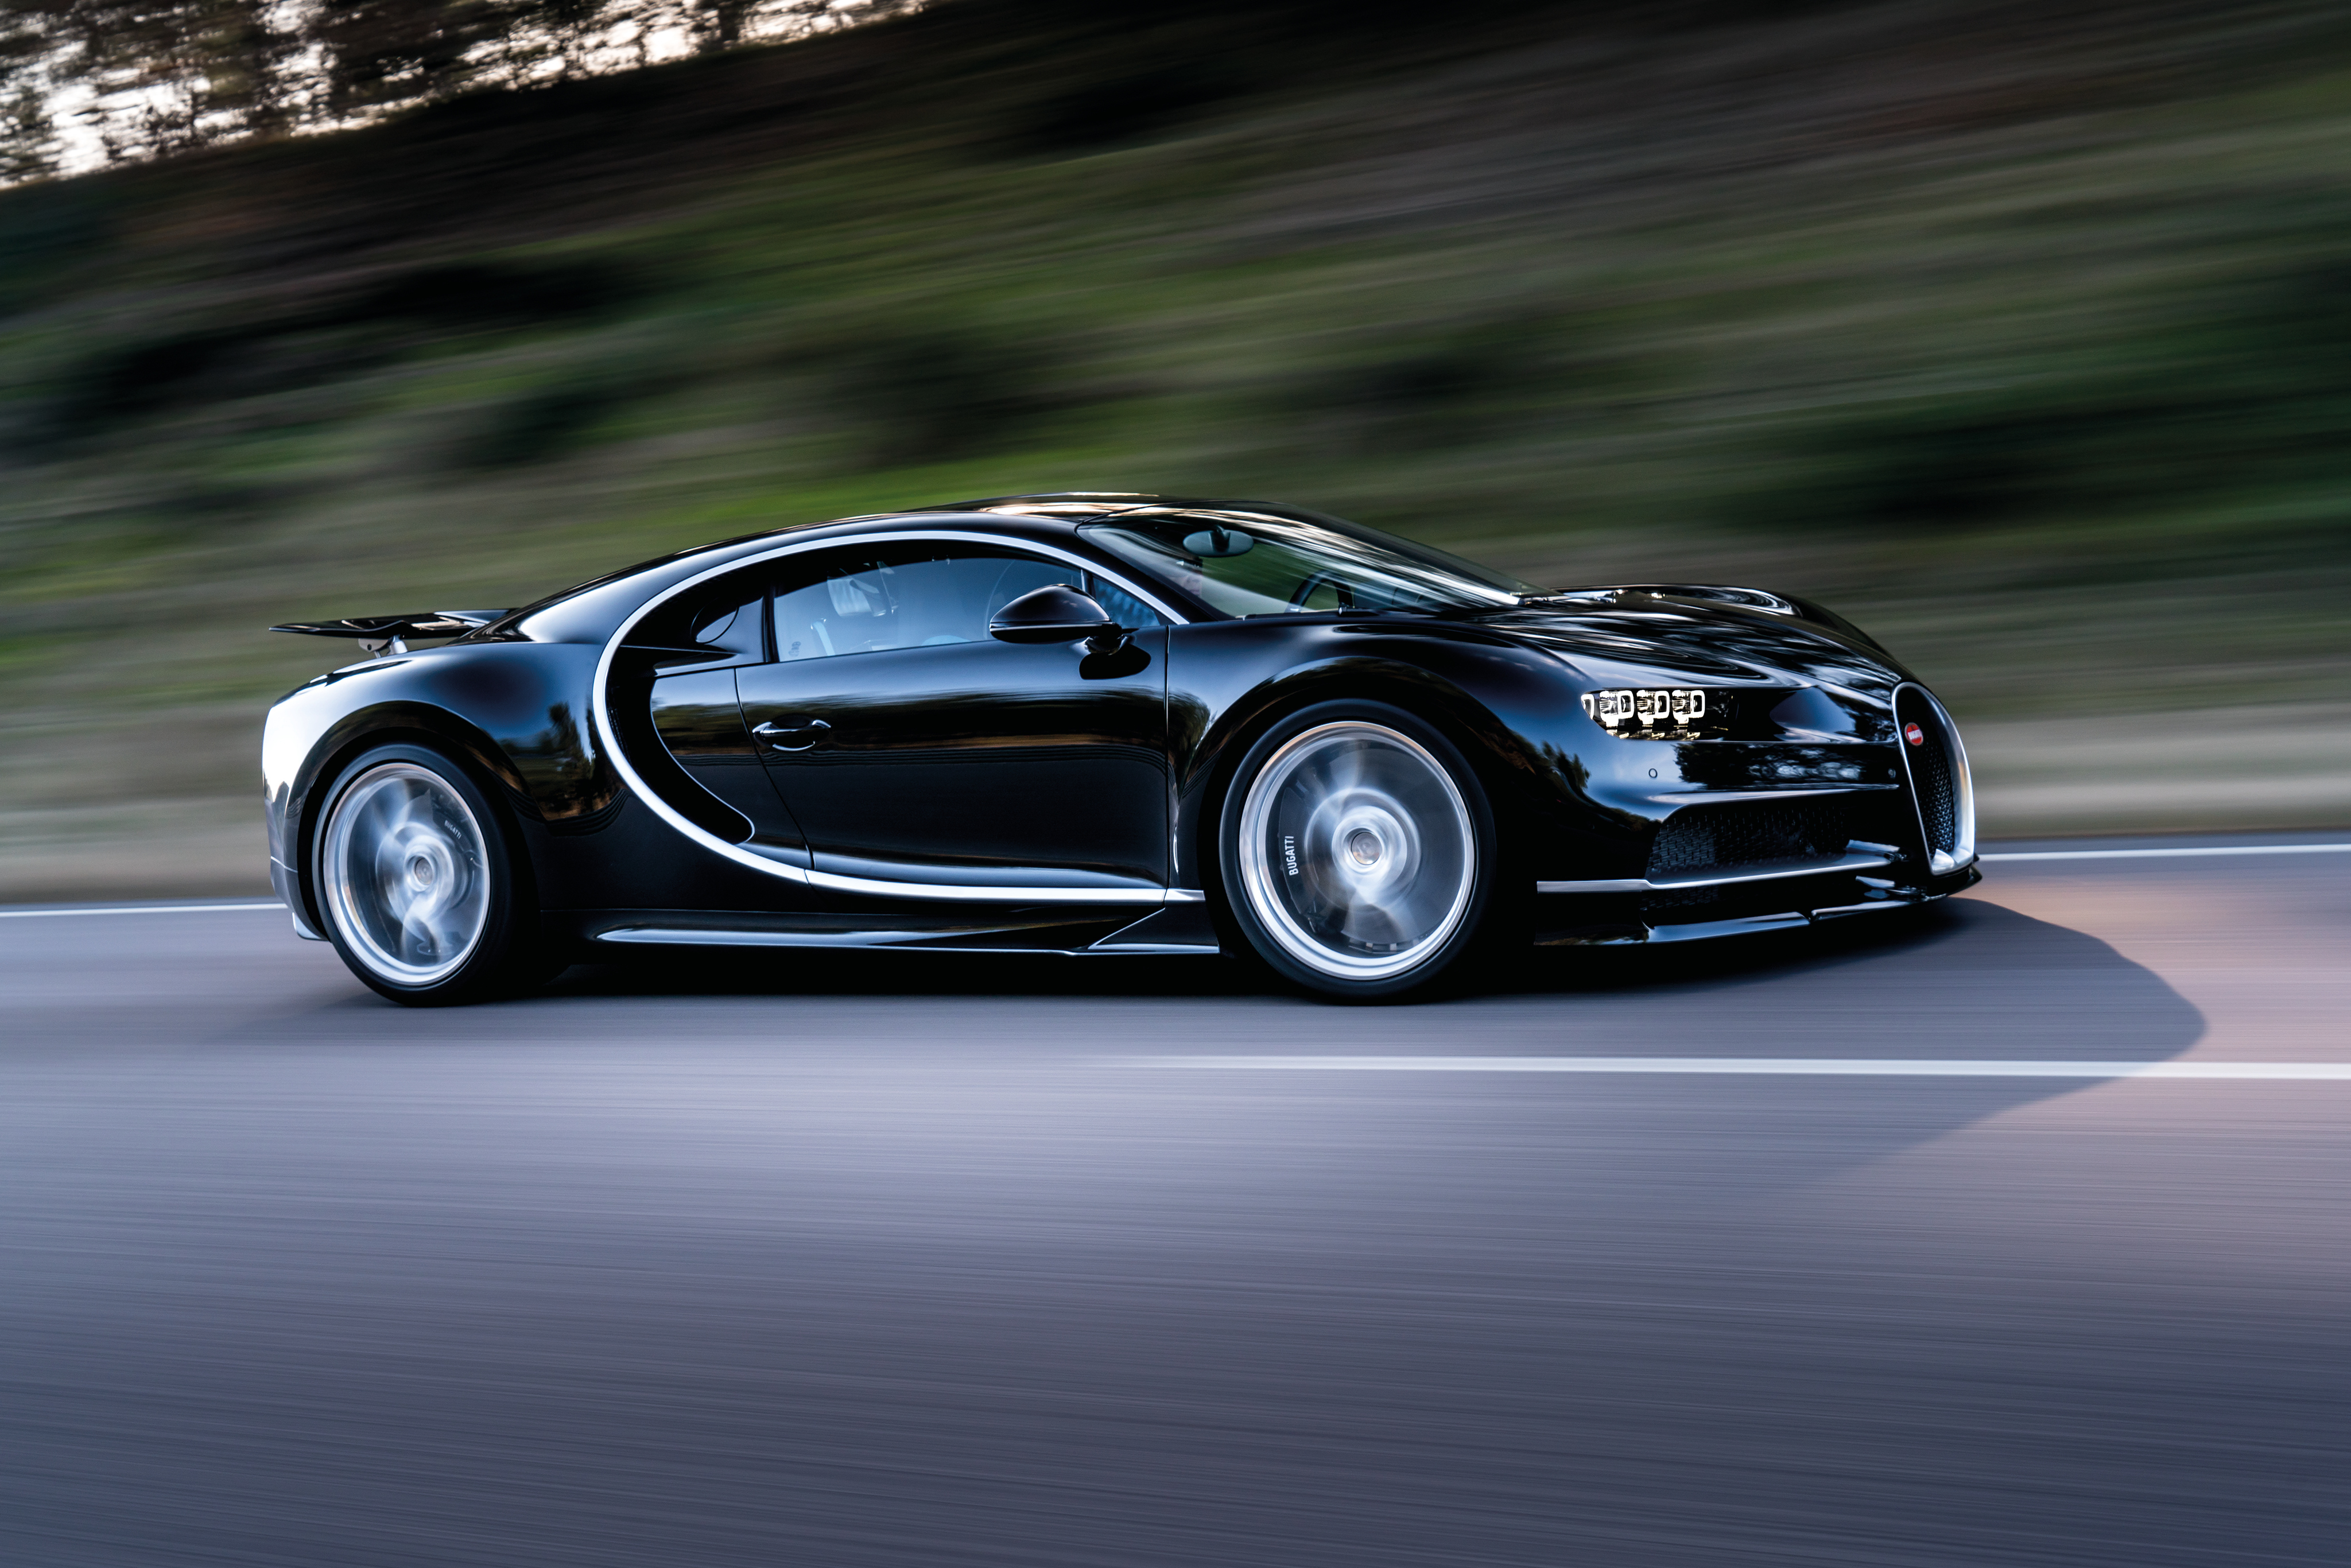 110158 download wallpaper Bugatti, Cars, Side View, Speed, Chiron screensavers and pictures for free